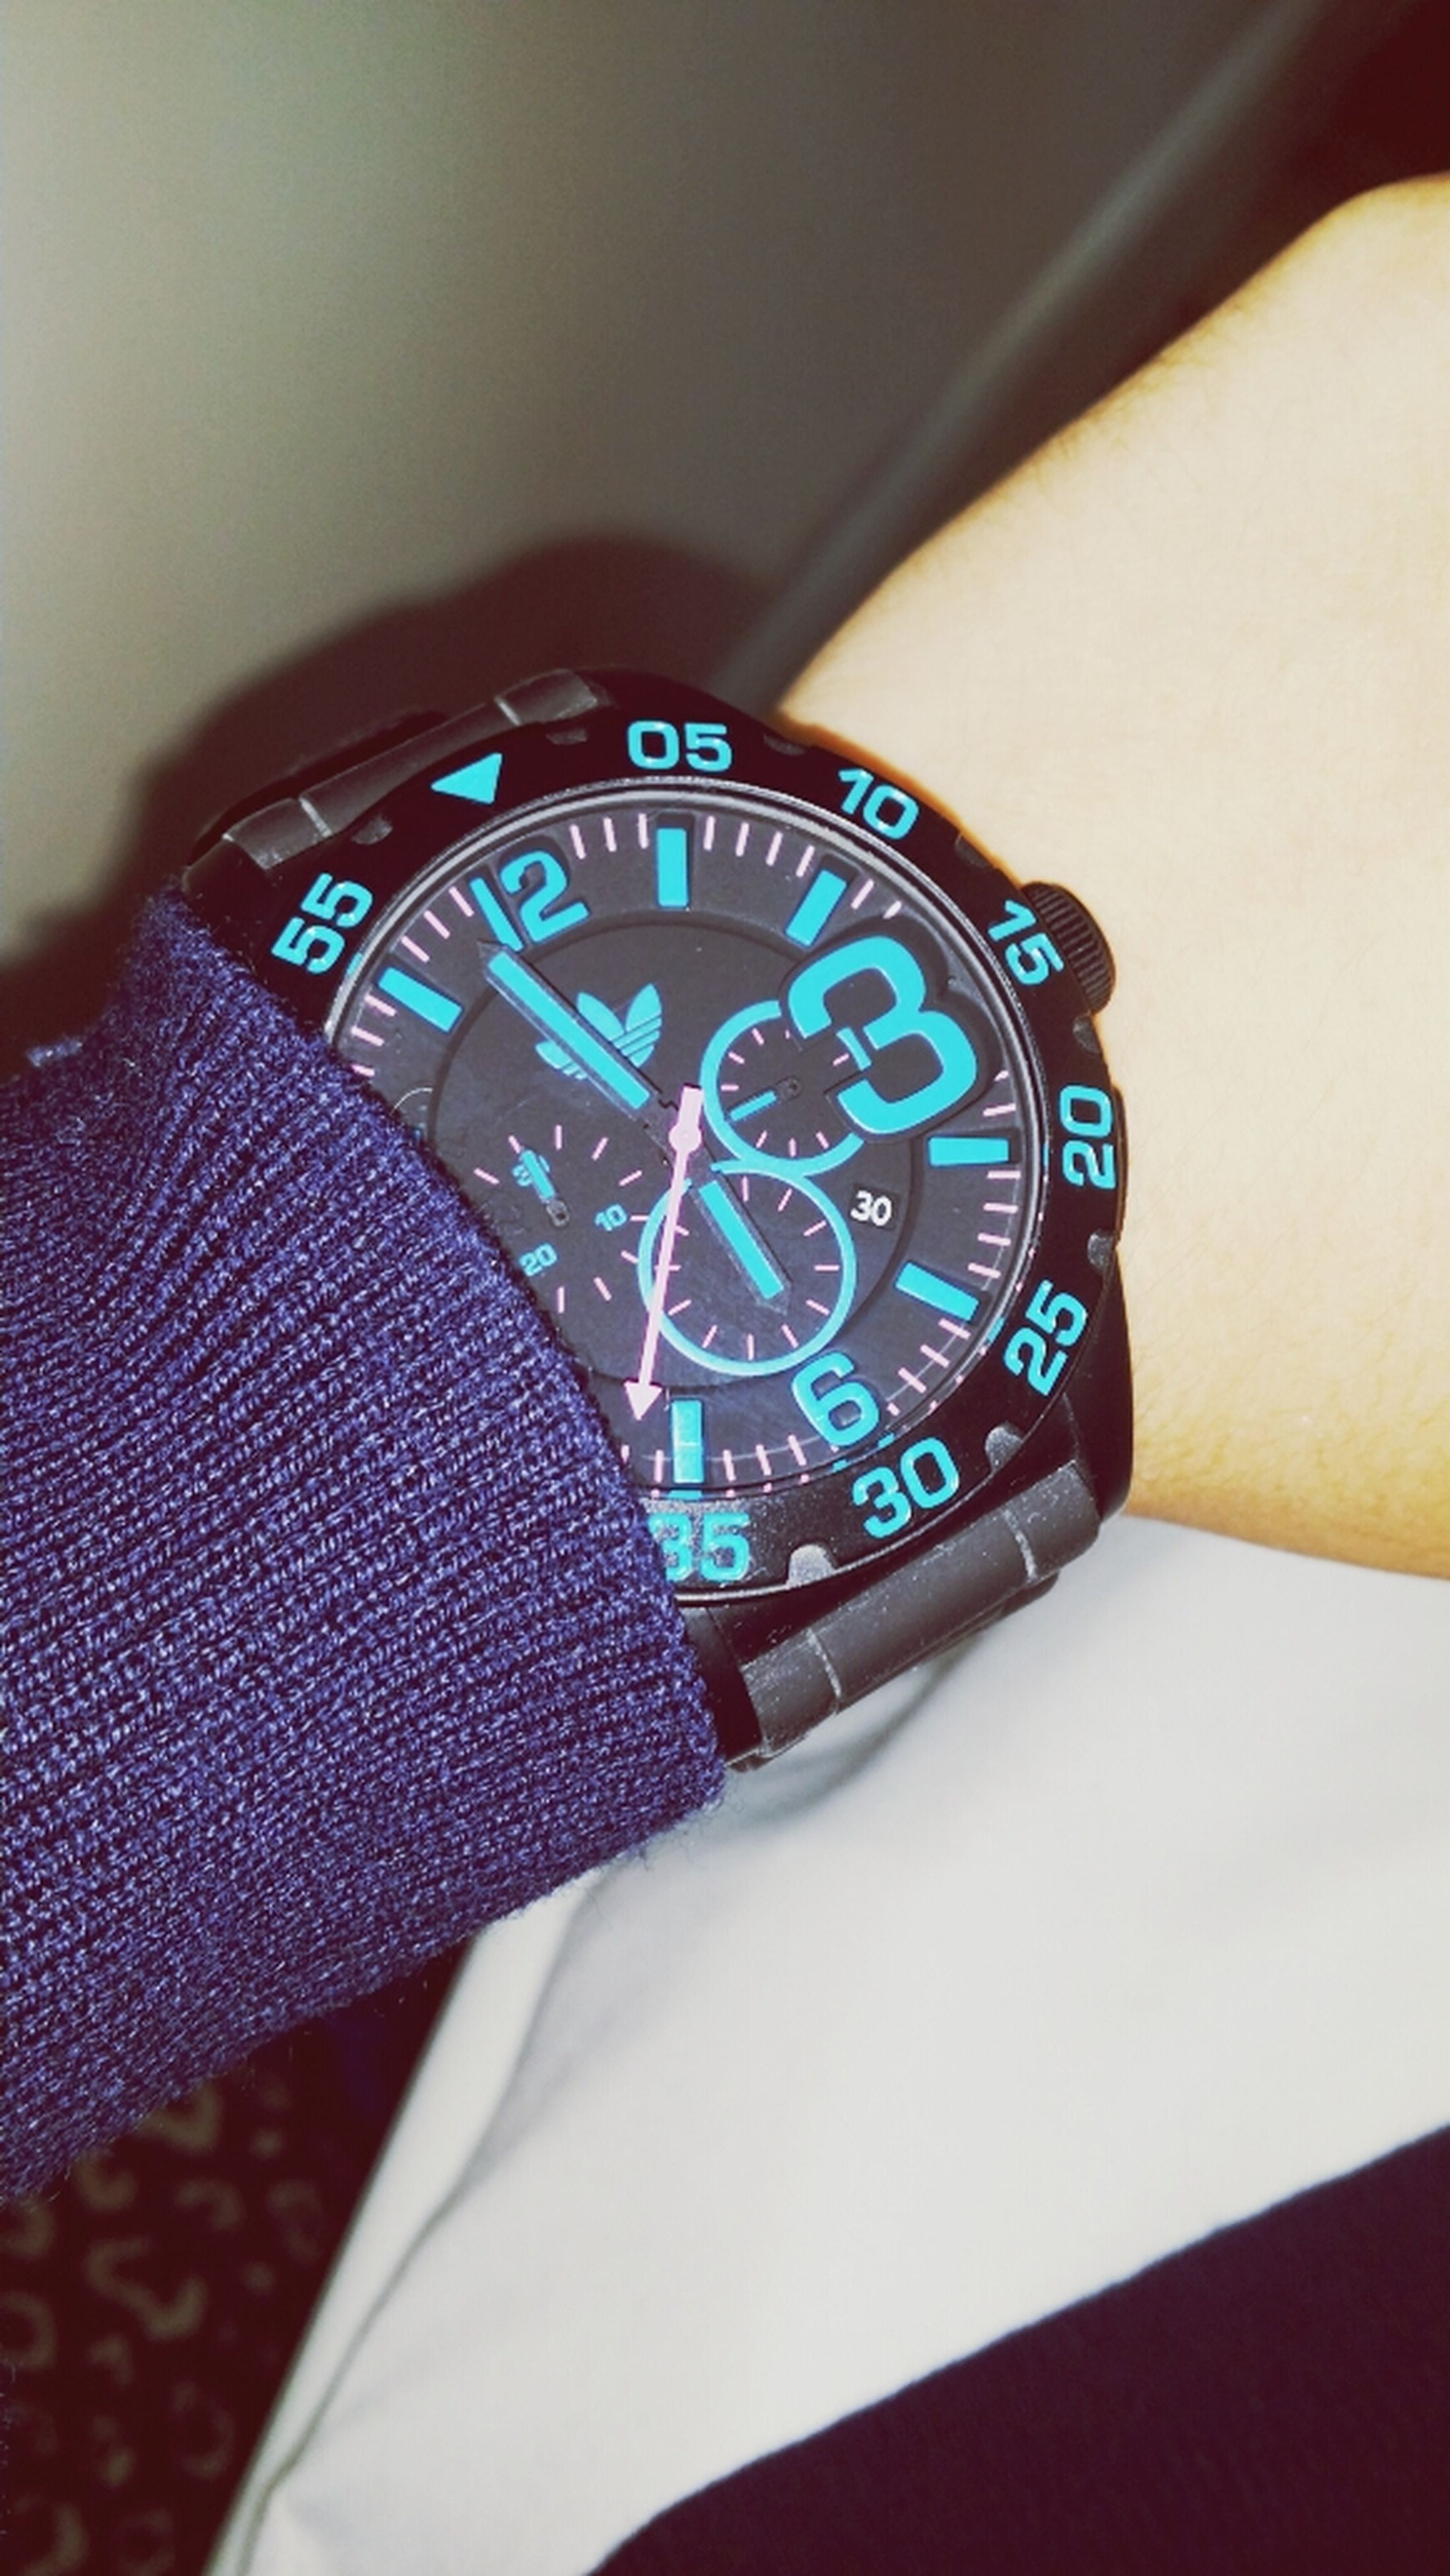 indoors, close-up, lifestyles, leisure activity, communication, part of, person, time, high angle view, men, technology, holding, wristwatch, home interior, accuracy, unrecognizable person